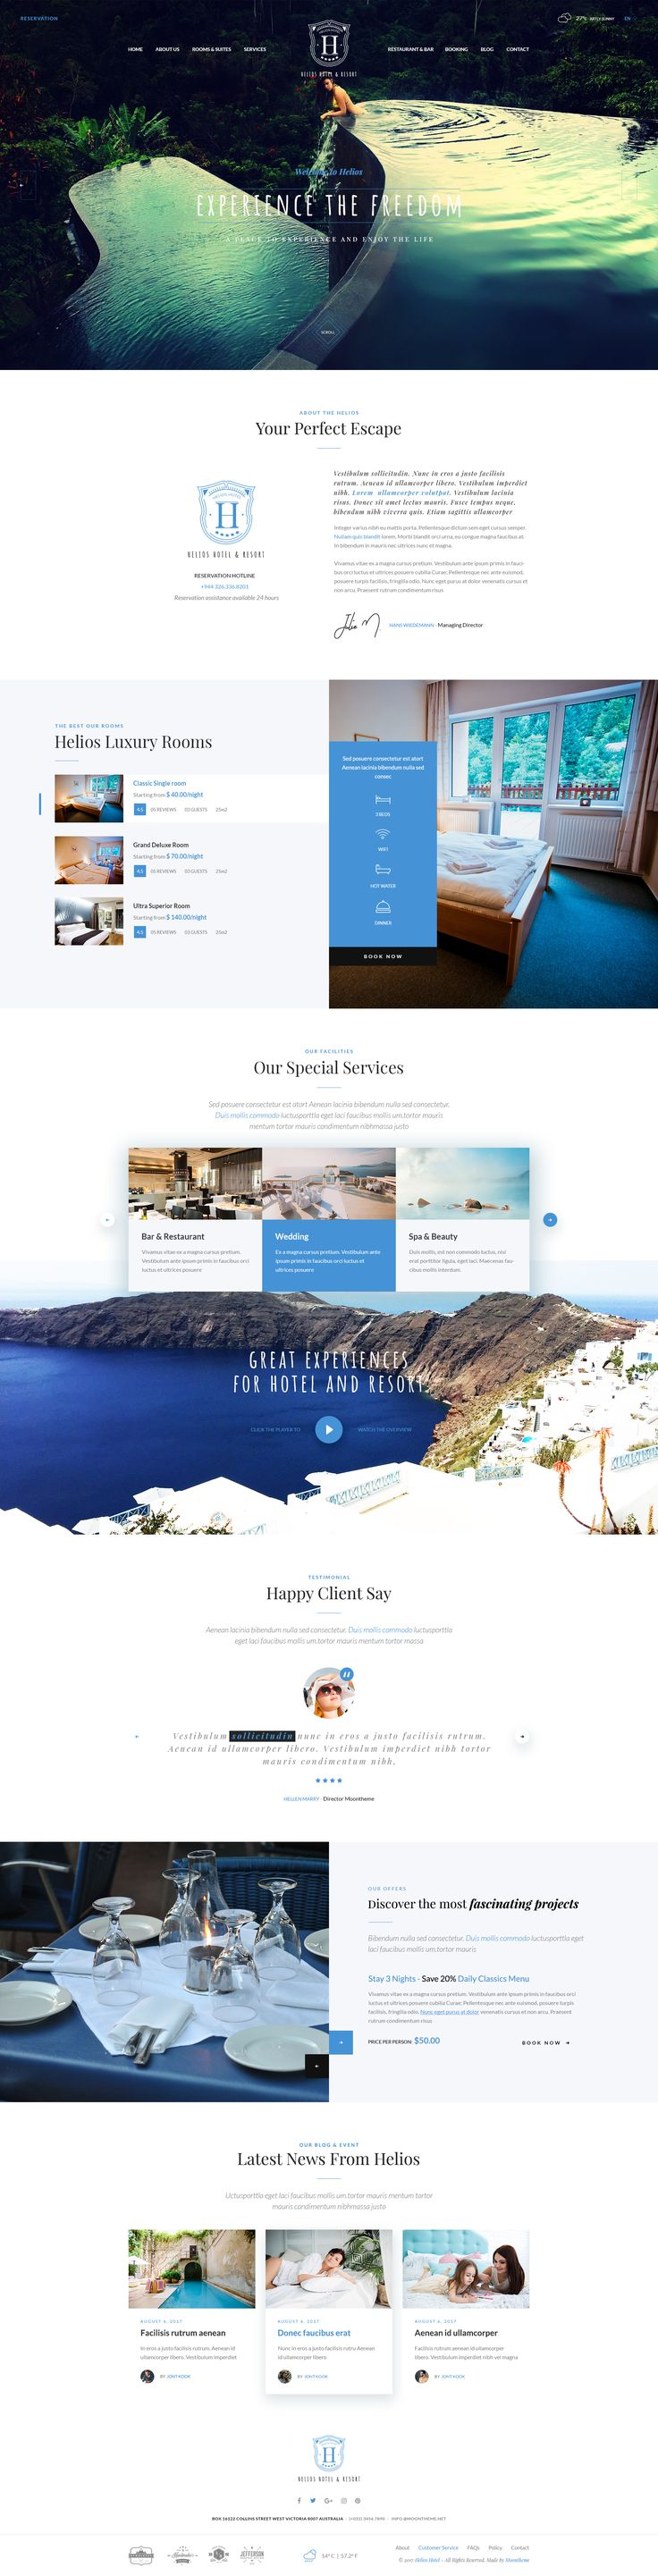 HELIOS - Multipurpose Hotel & Resort PSD Template #hotel #hotels search #modern • Download ➝ https://themeforest.net/item/helios-multipurpose-hotel-resort-psd-template/20507377?ref=pxcr